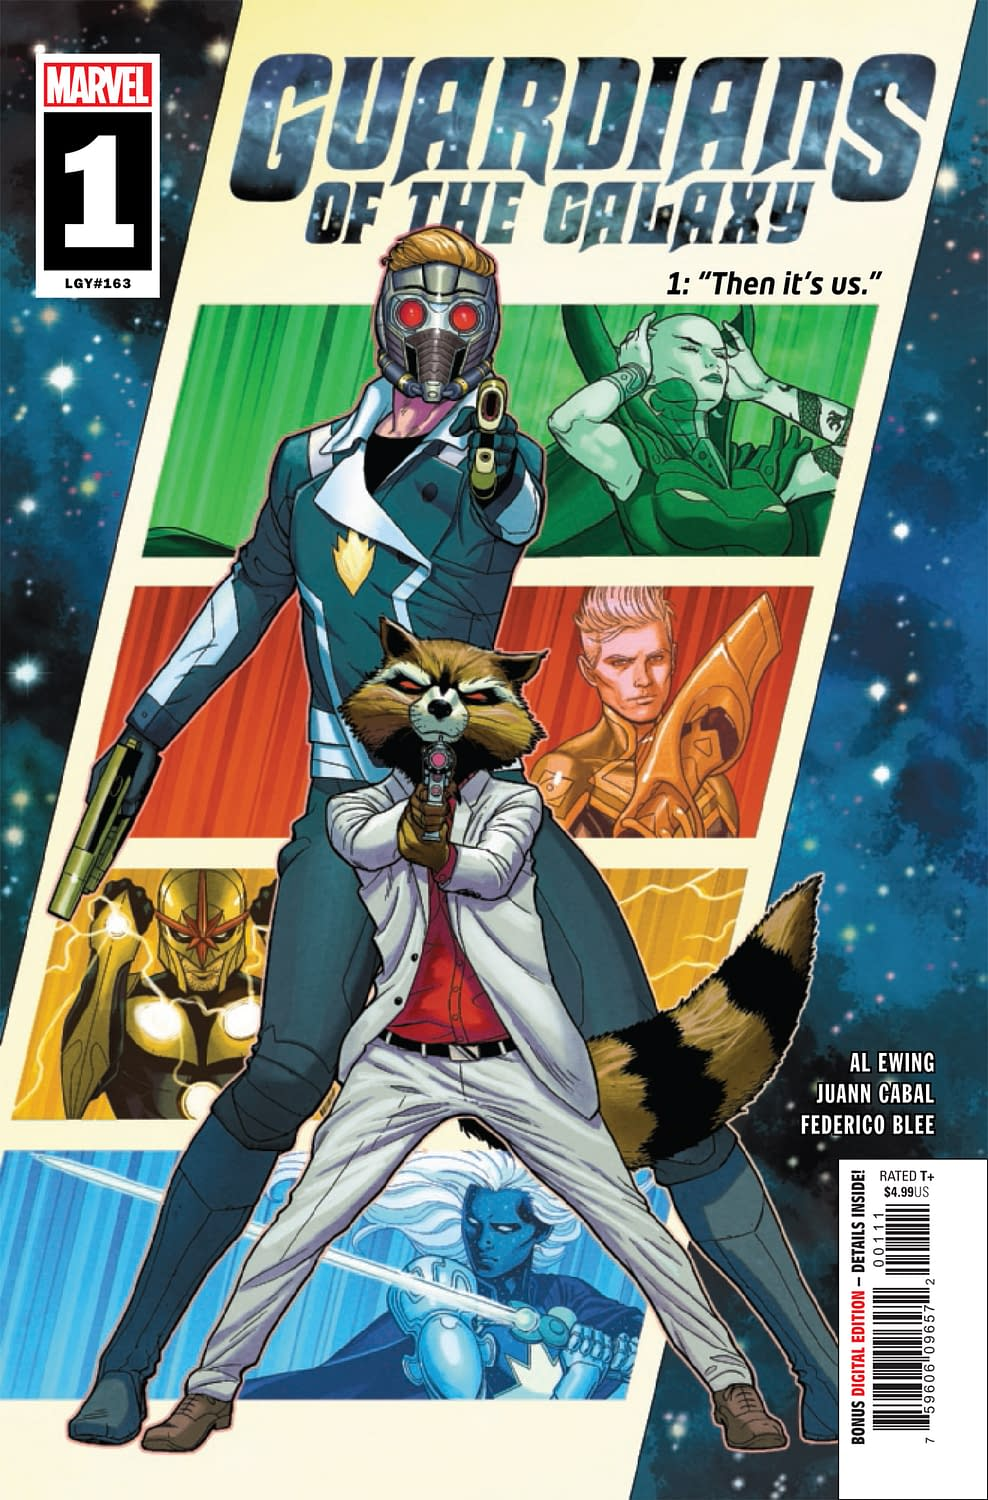 """REVIEW: Guardians Of The Galaxy #1 -- """"There's An Idiotic Kind Of Glee To This"""""""